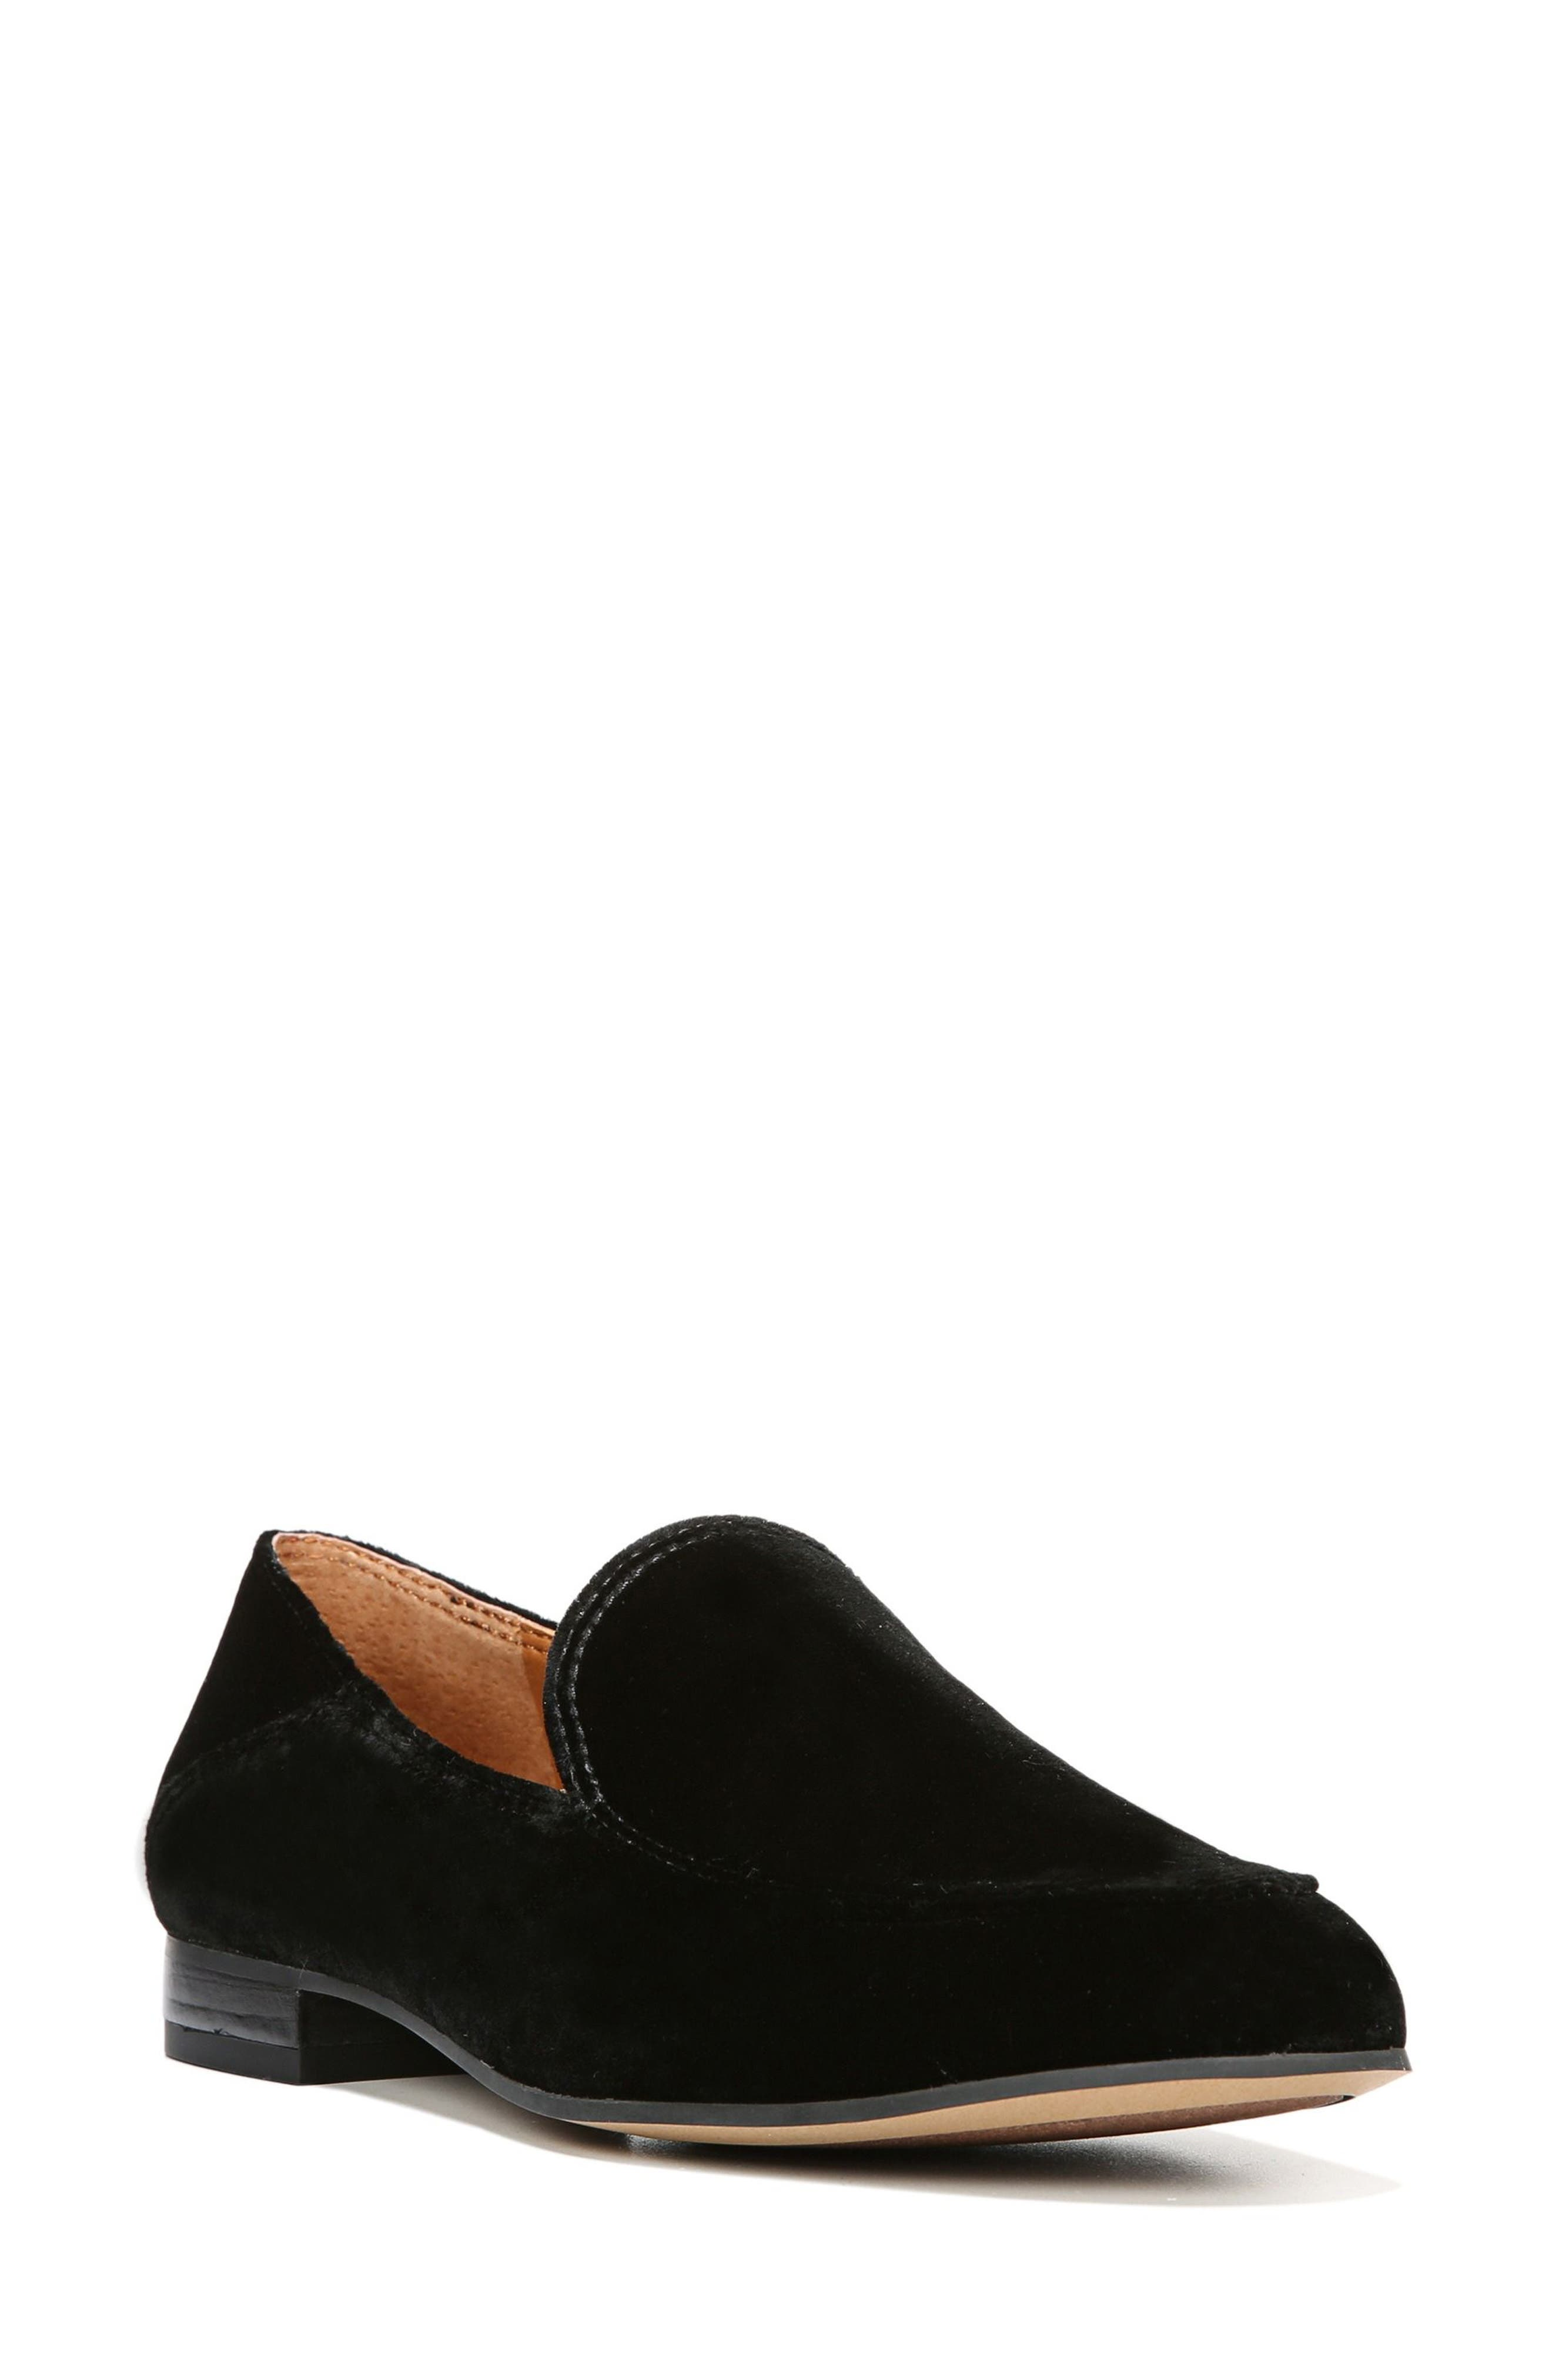 SARTO BY FRANCO SARTO Kristen Loafer, Main, color, 001